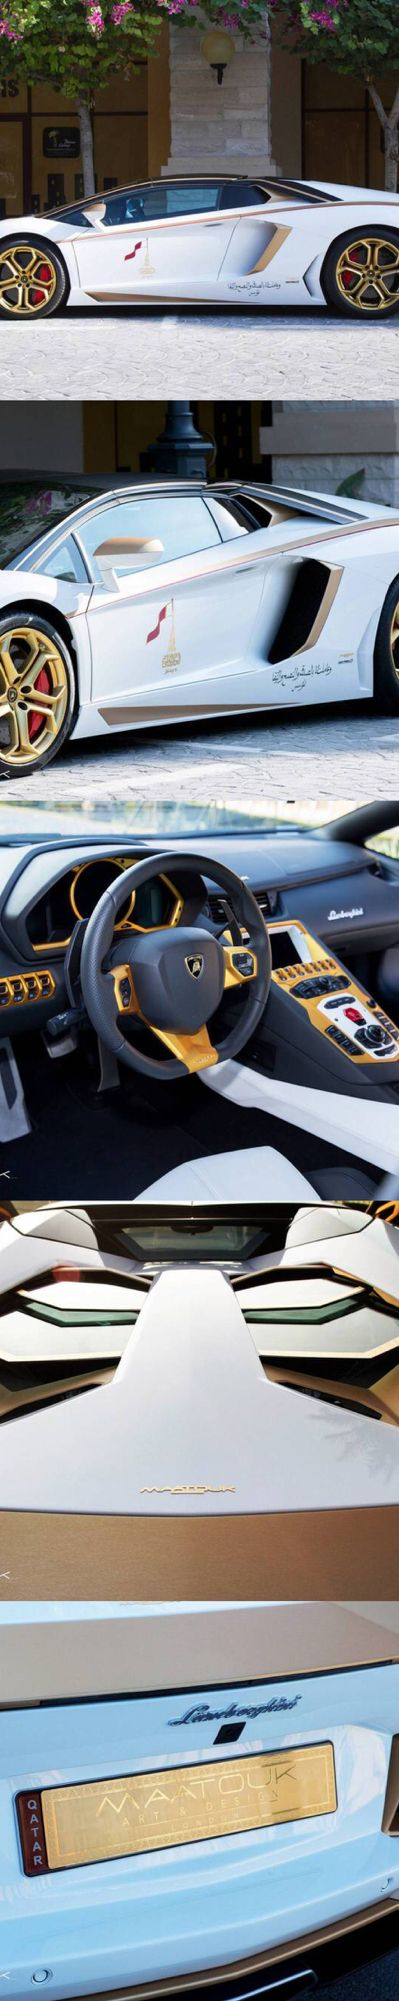 Lamborghini. A good looking car deserves a high quality trunk organizer http://www.amazon.com/dp/B00EARP1JO  #RePin by AT Social Media Marketing - Pinterest Marketing Specialists ATSocialMedia.co.uk